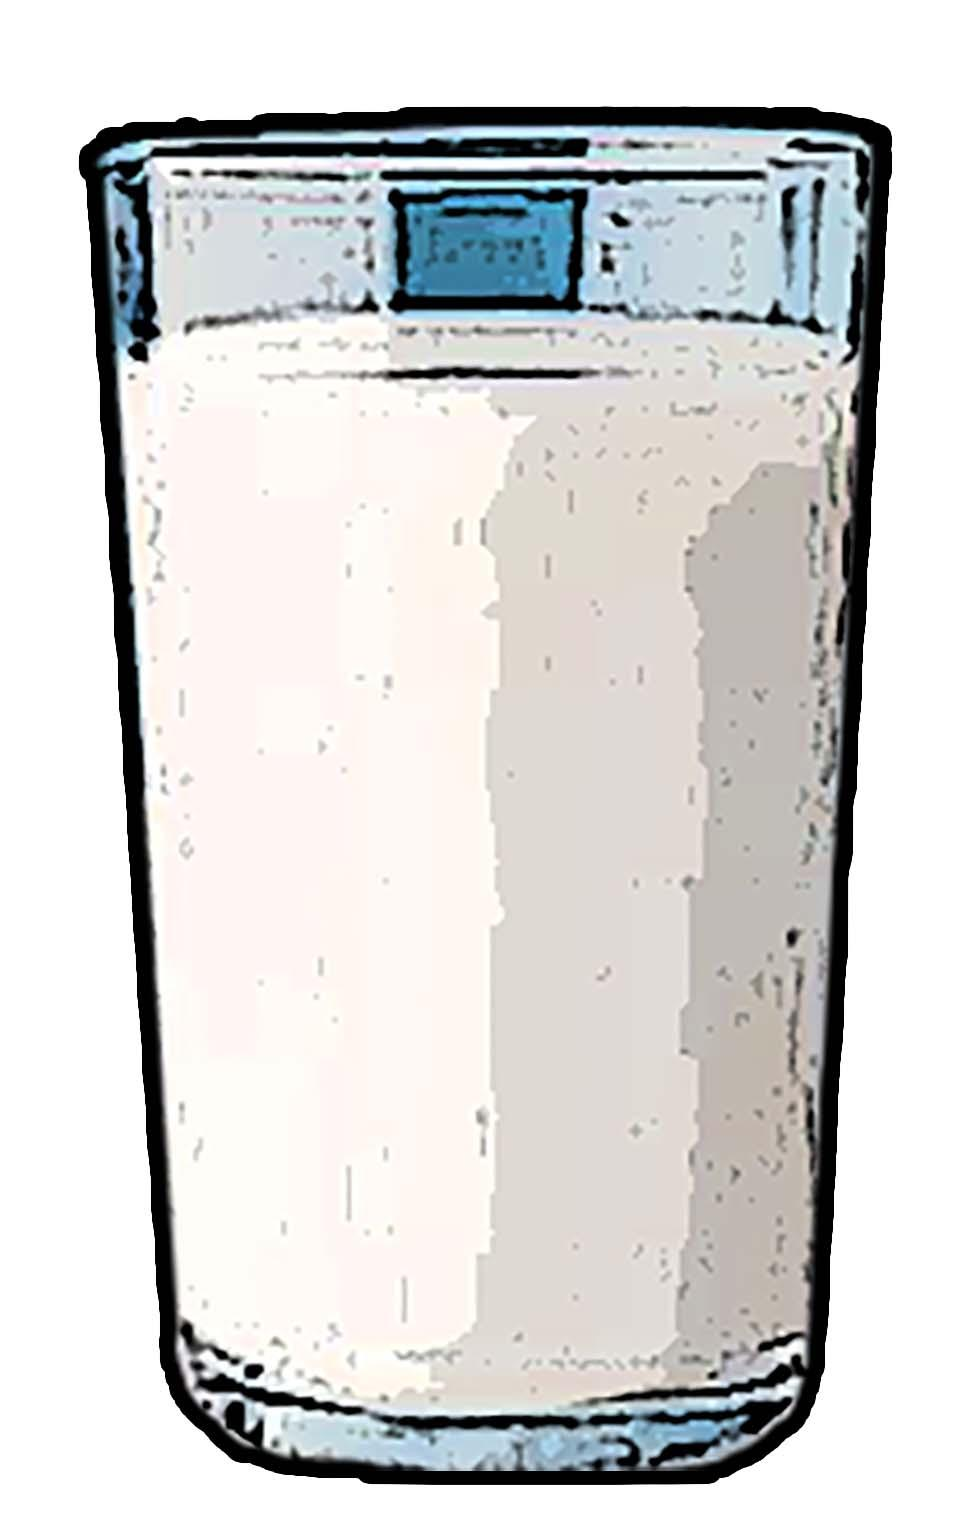 Objects - Glass of milk - 04 - Non-country specific